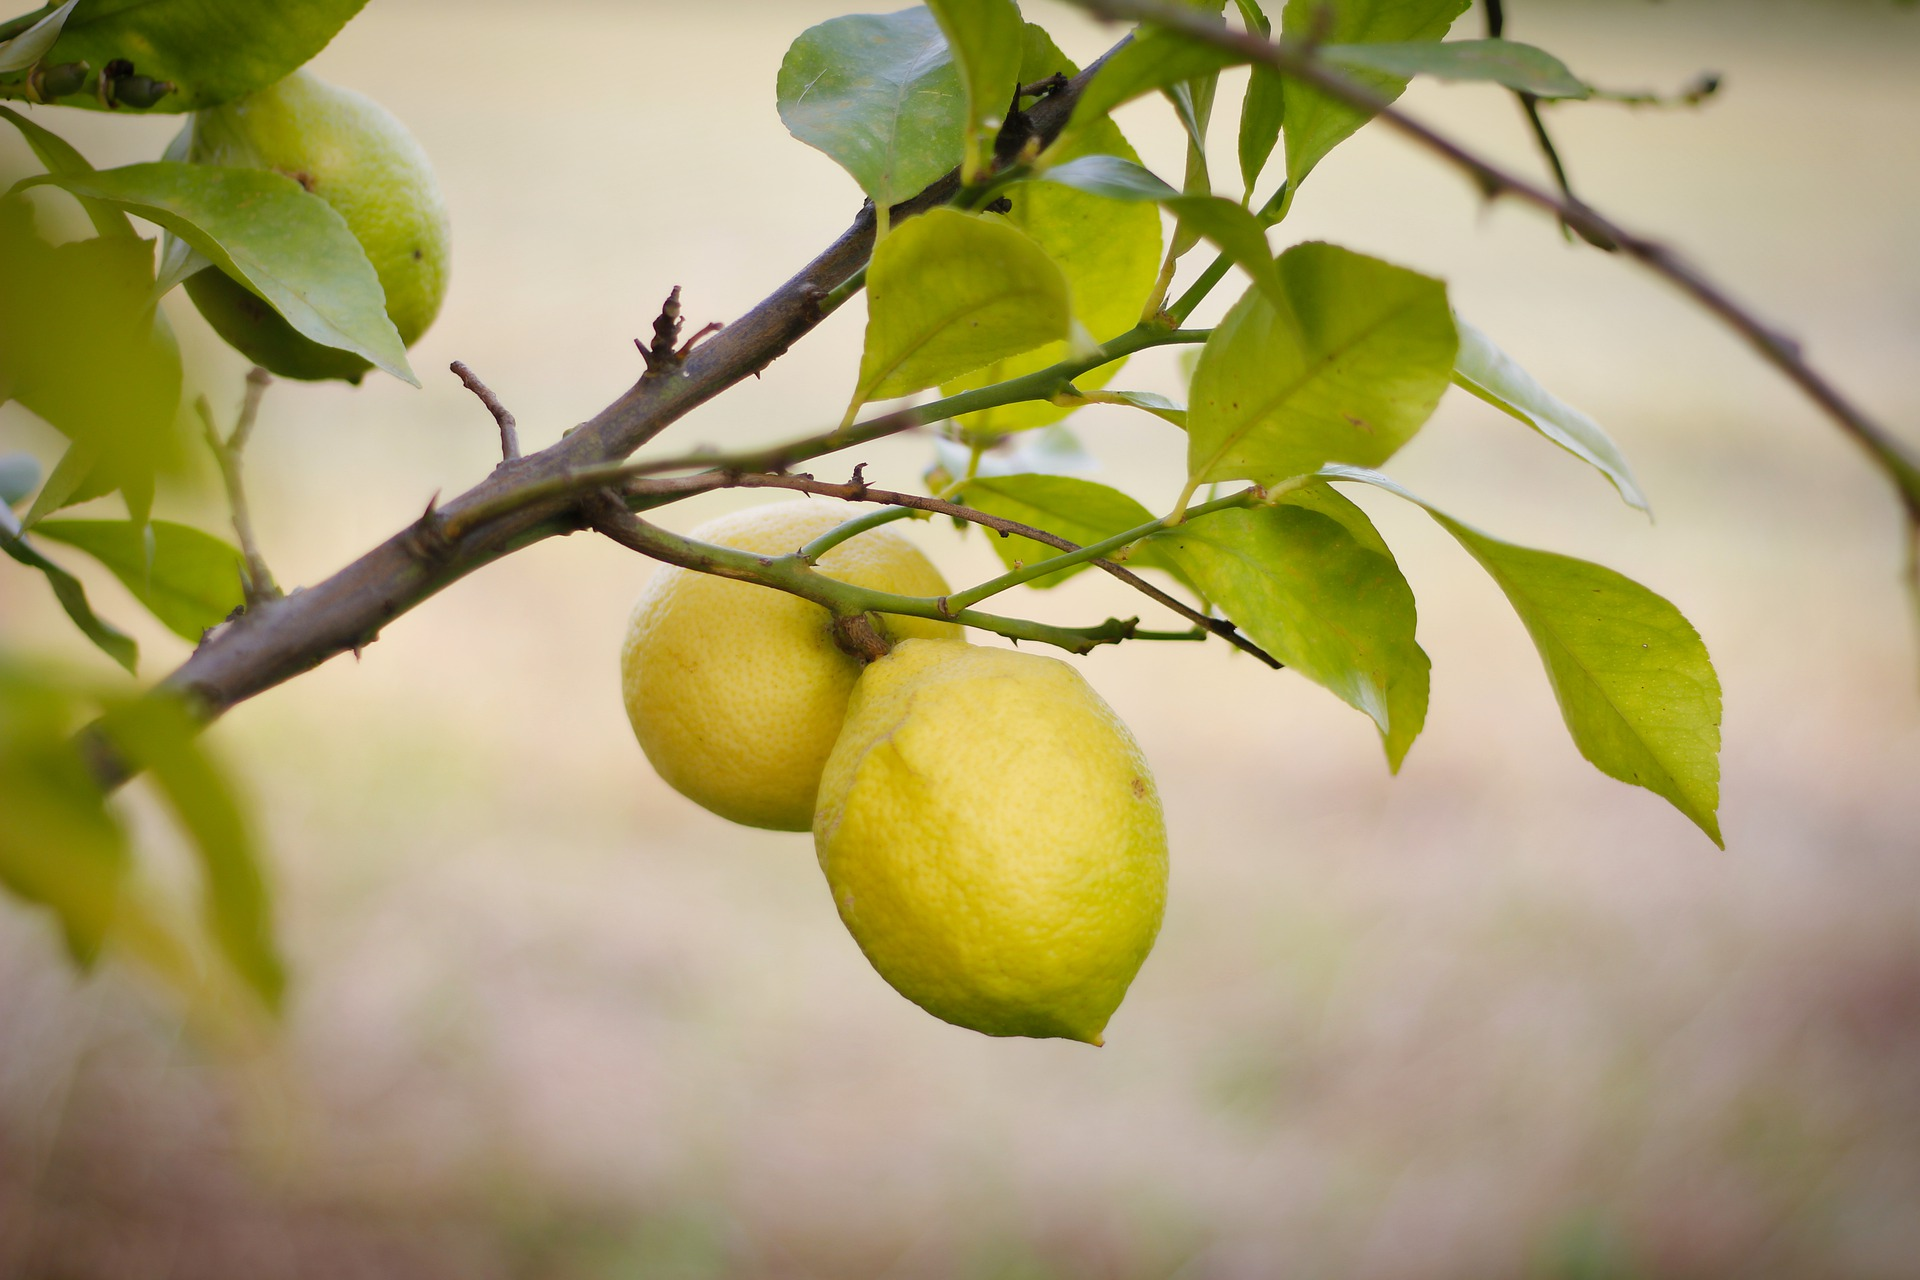 Lemons growing guide